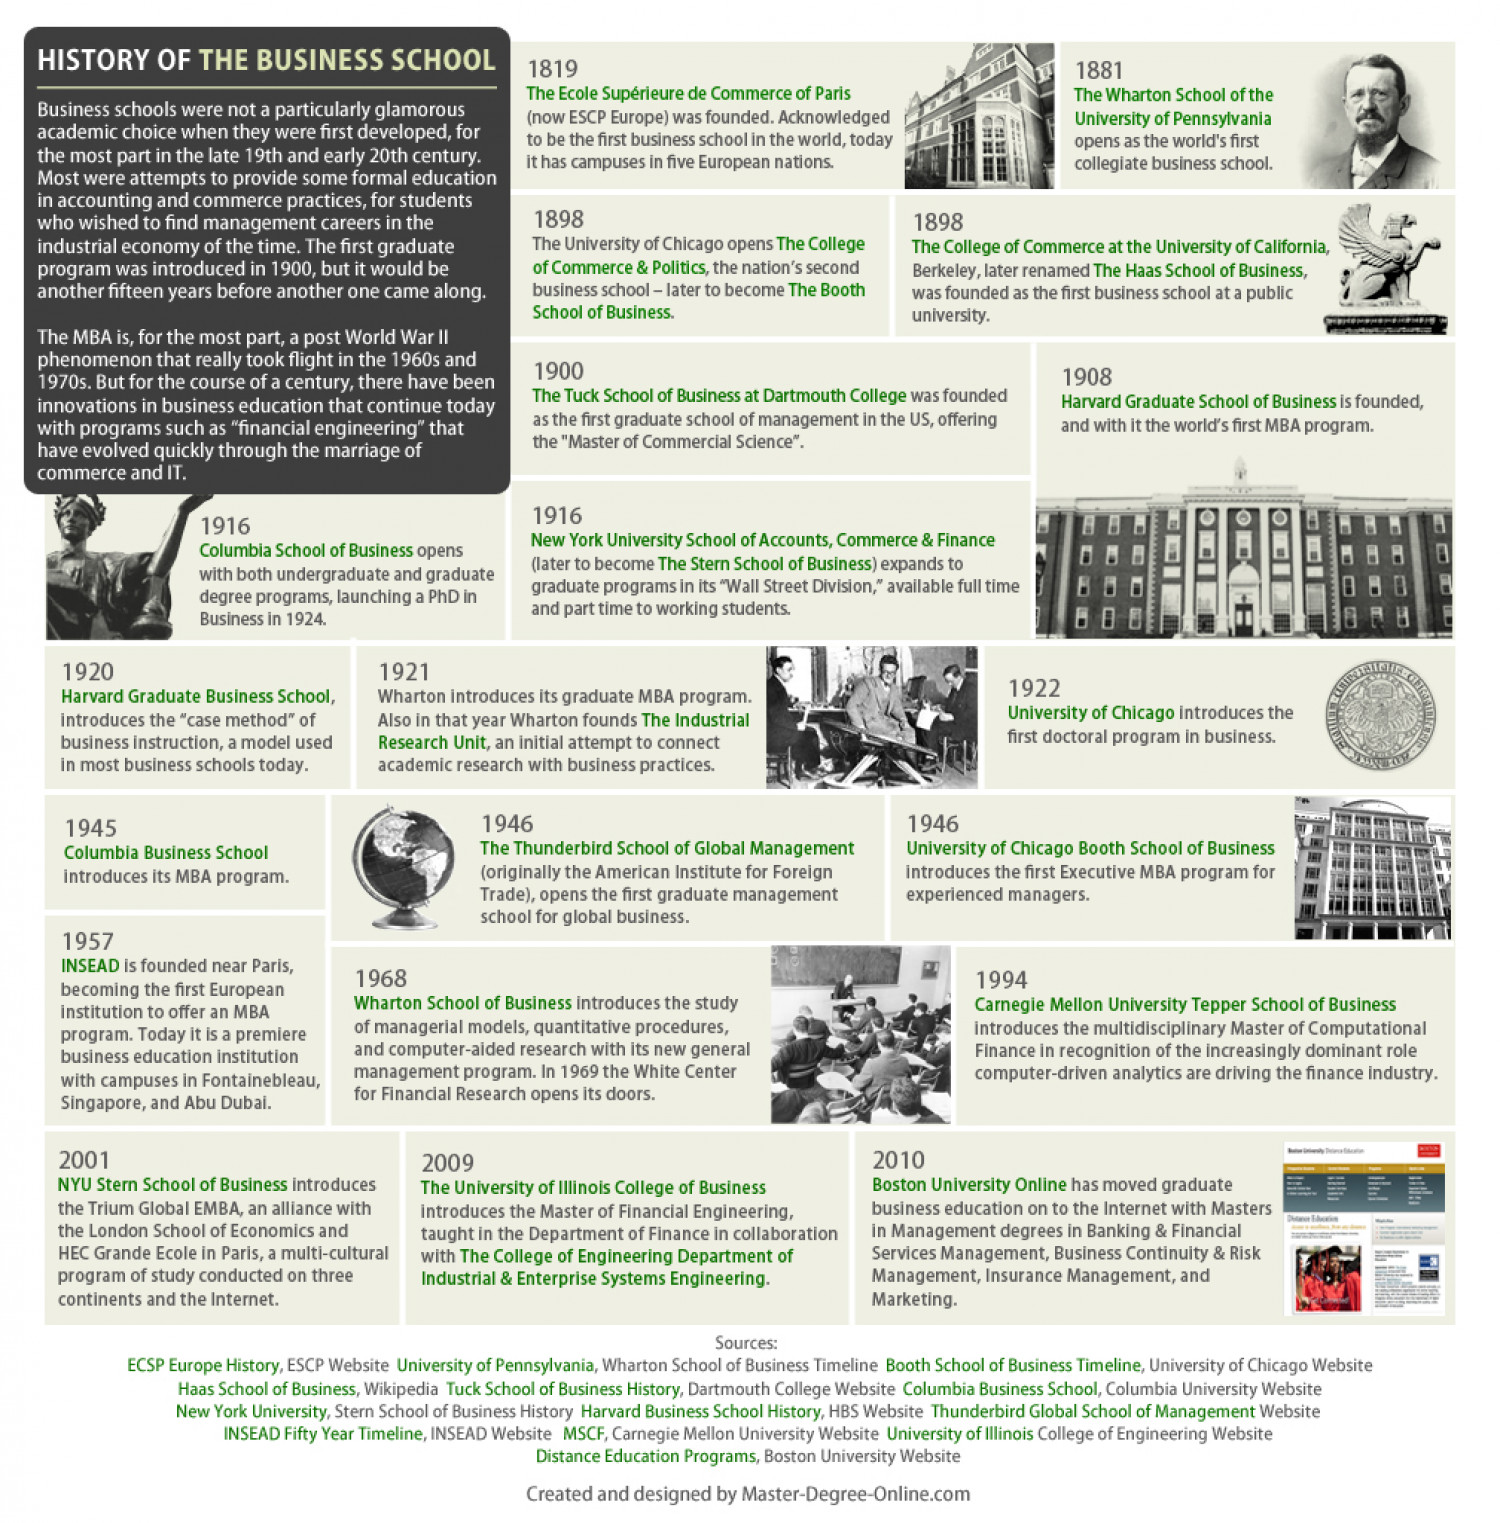 History of Business School  Infographic